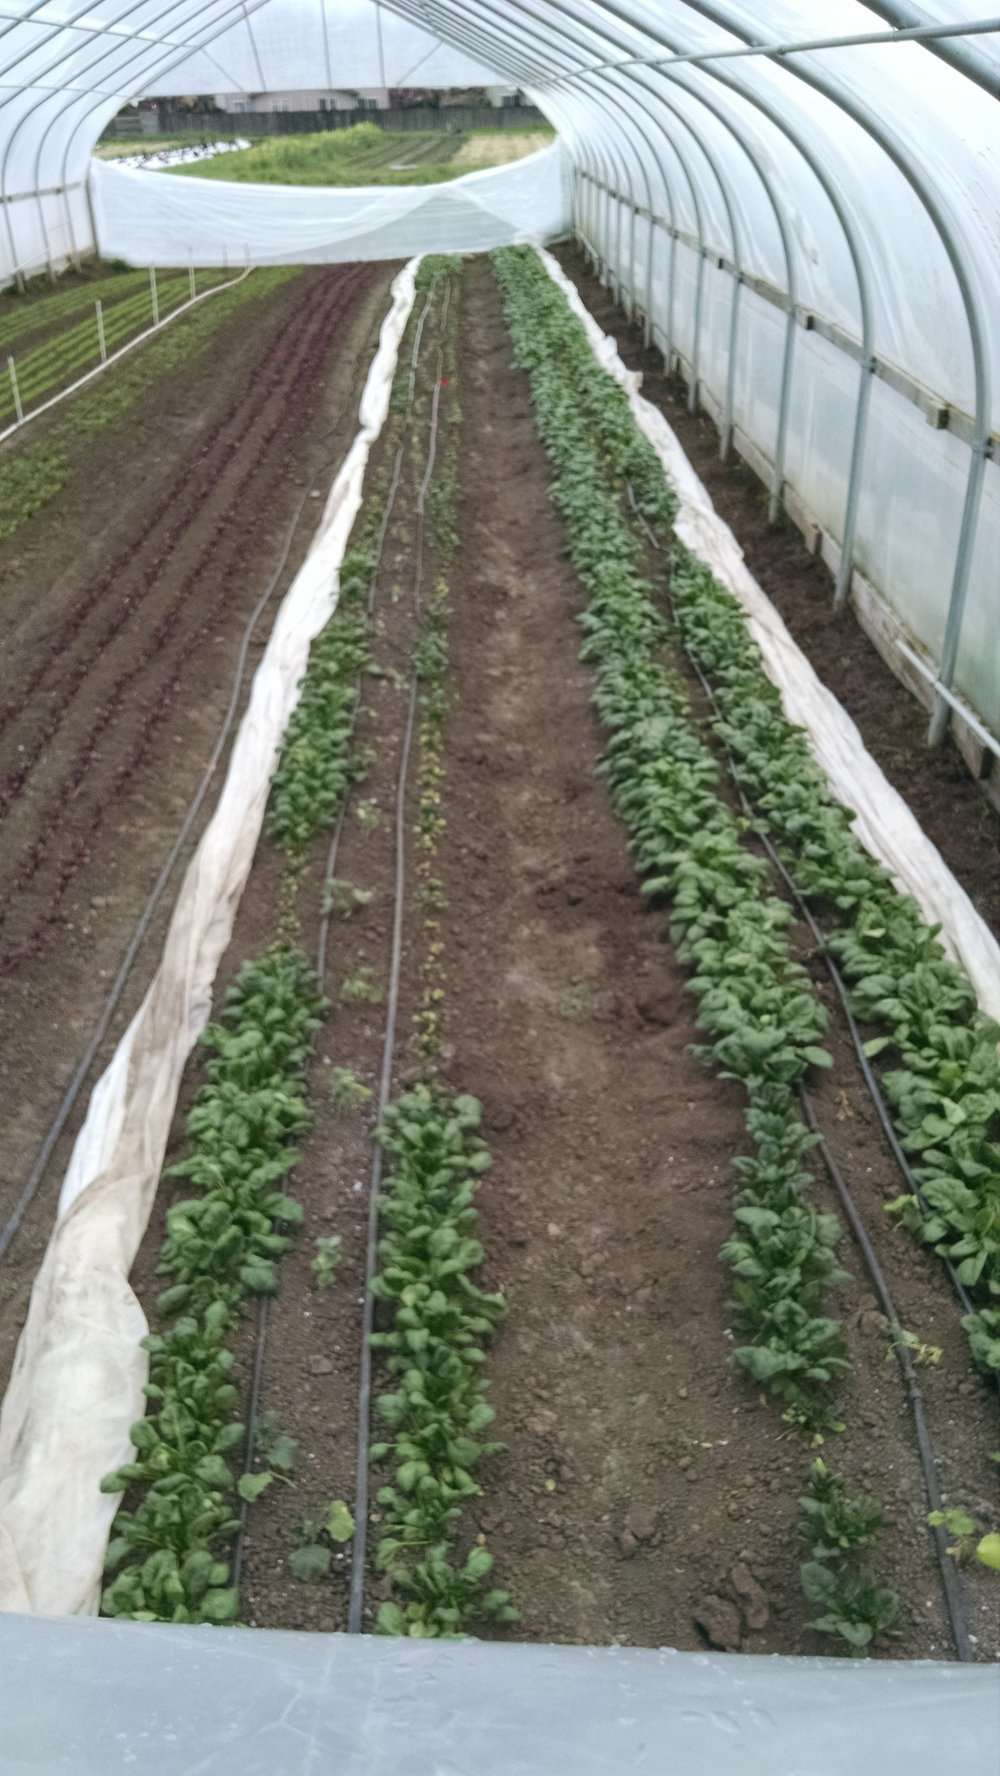 Vantage: Closing up the high tunnels to notice spinach poppin' and cukes hanging on by a thread